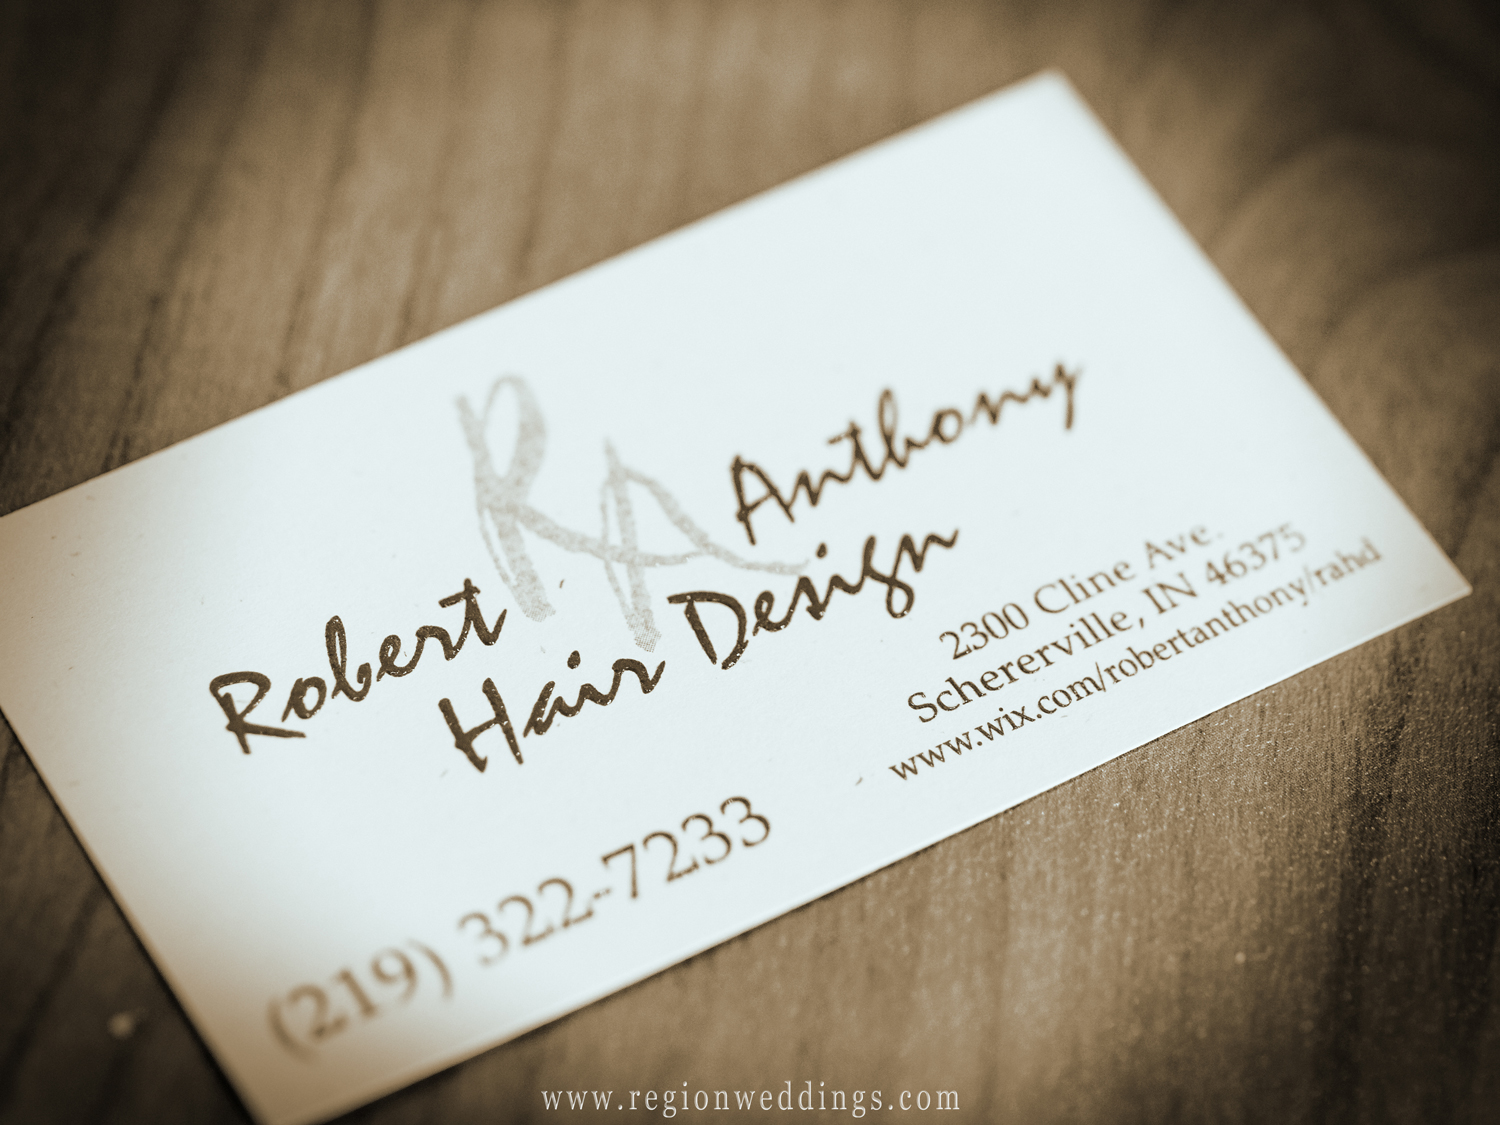 Business card for Robert Anthony Hair Design in Schererville, Indiana.